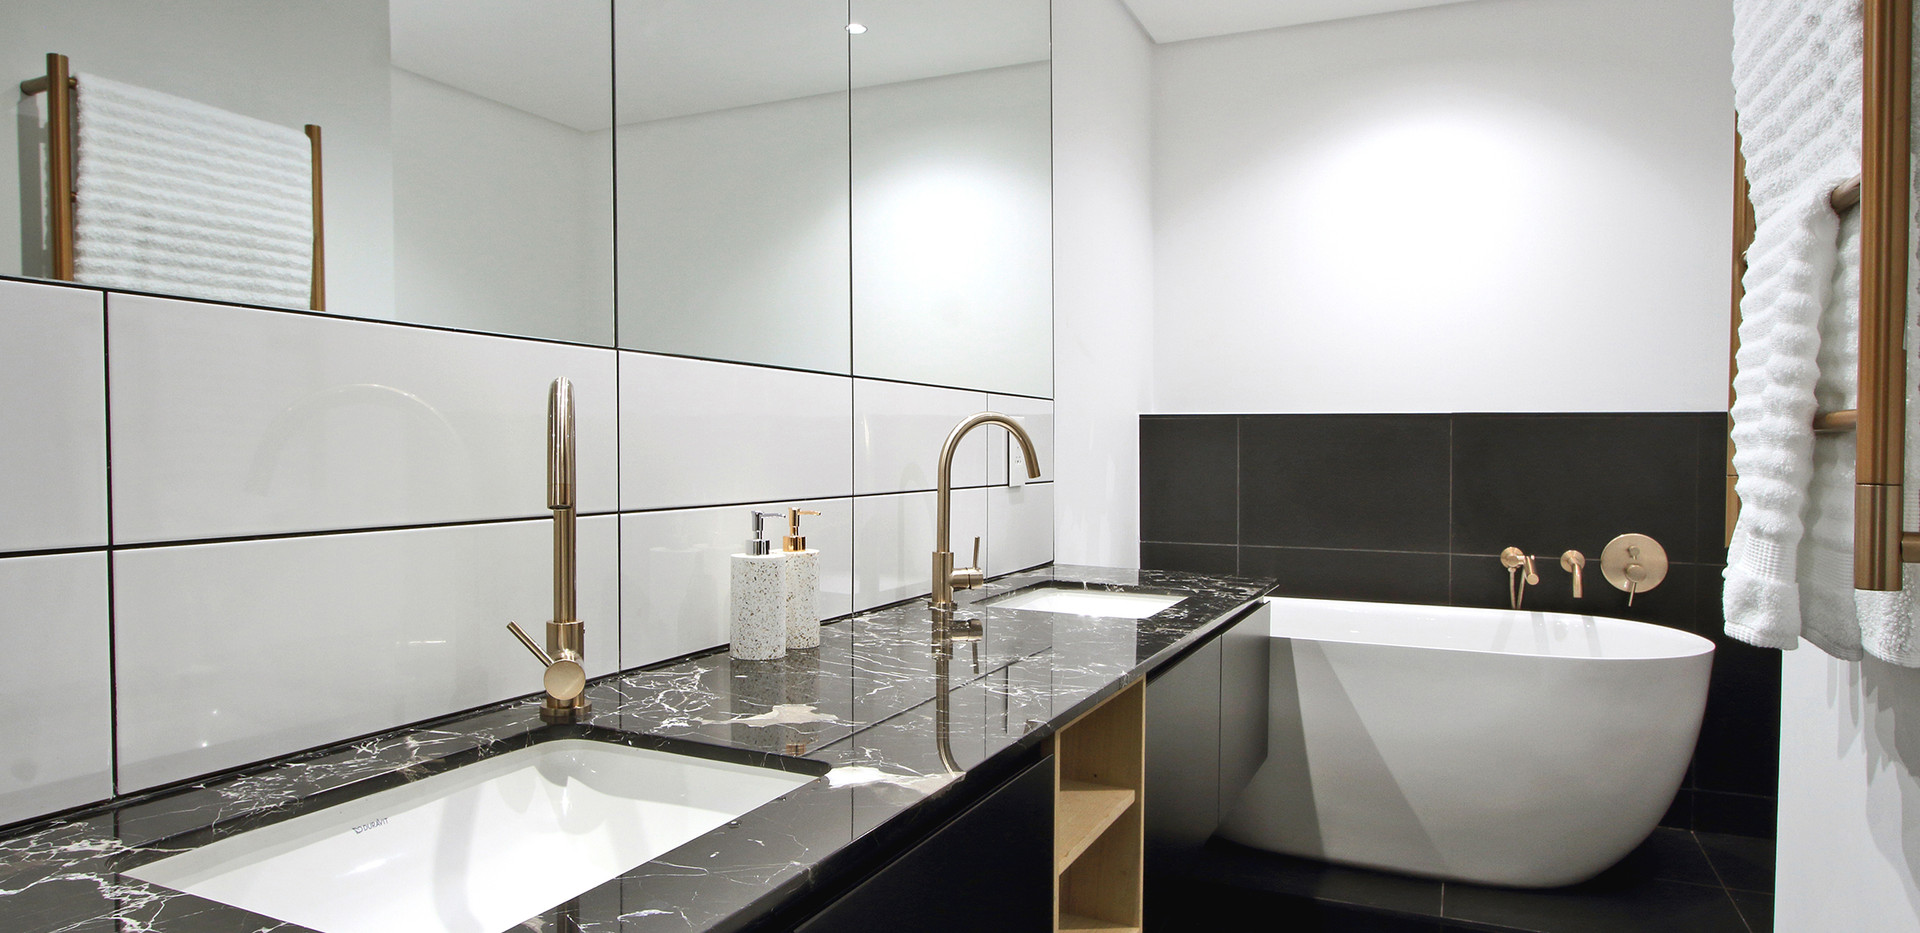 bathroom_Pentouse_Onyx_1106_ITC_1.jpg